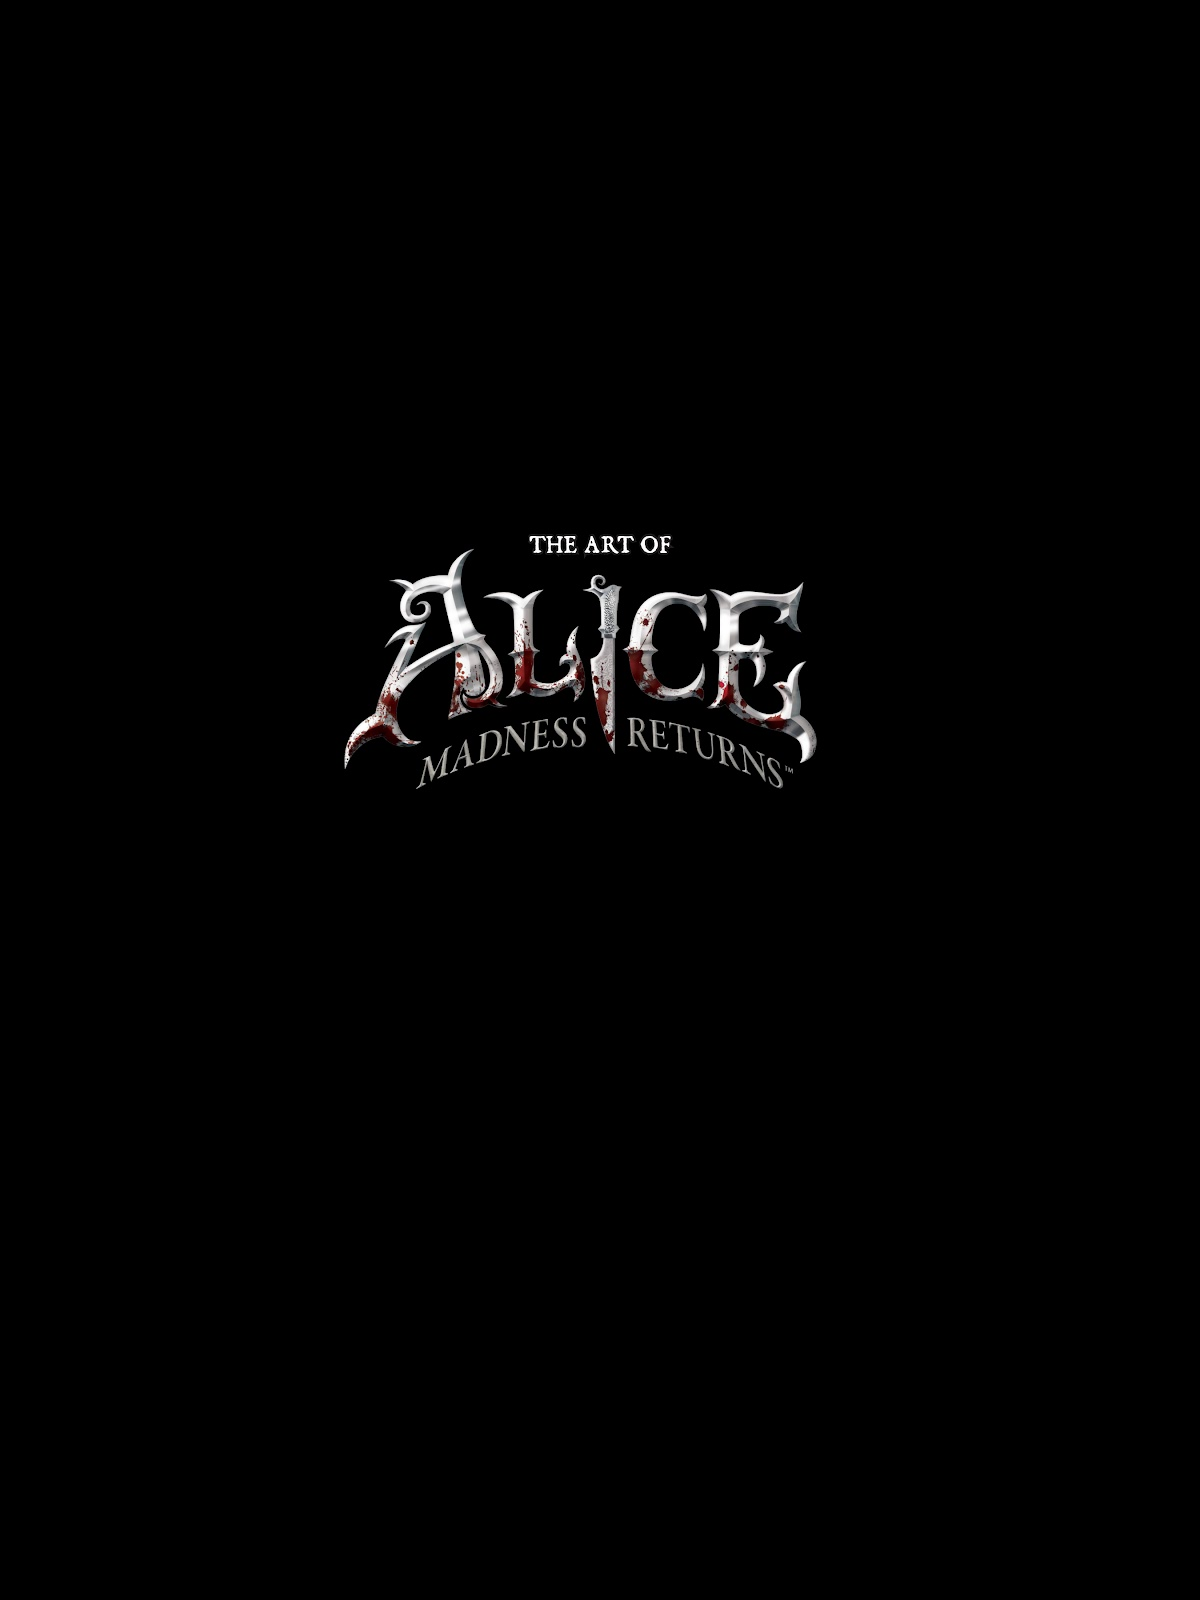 Read online The Art of Alice: Madness Returns comic -  Issue # TPB (Part 1) - 3